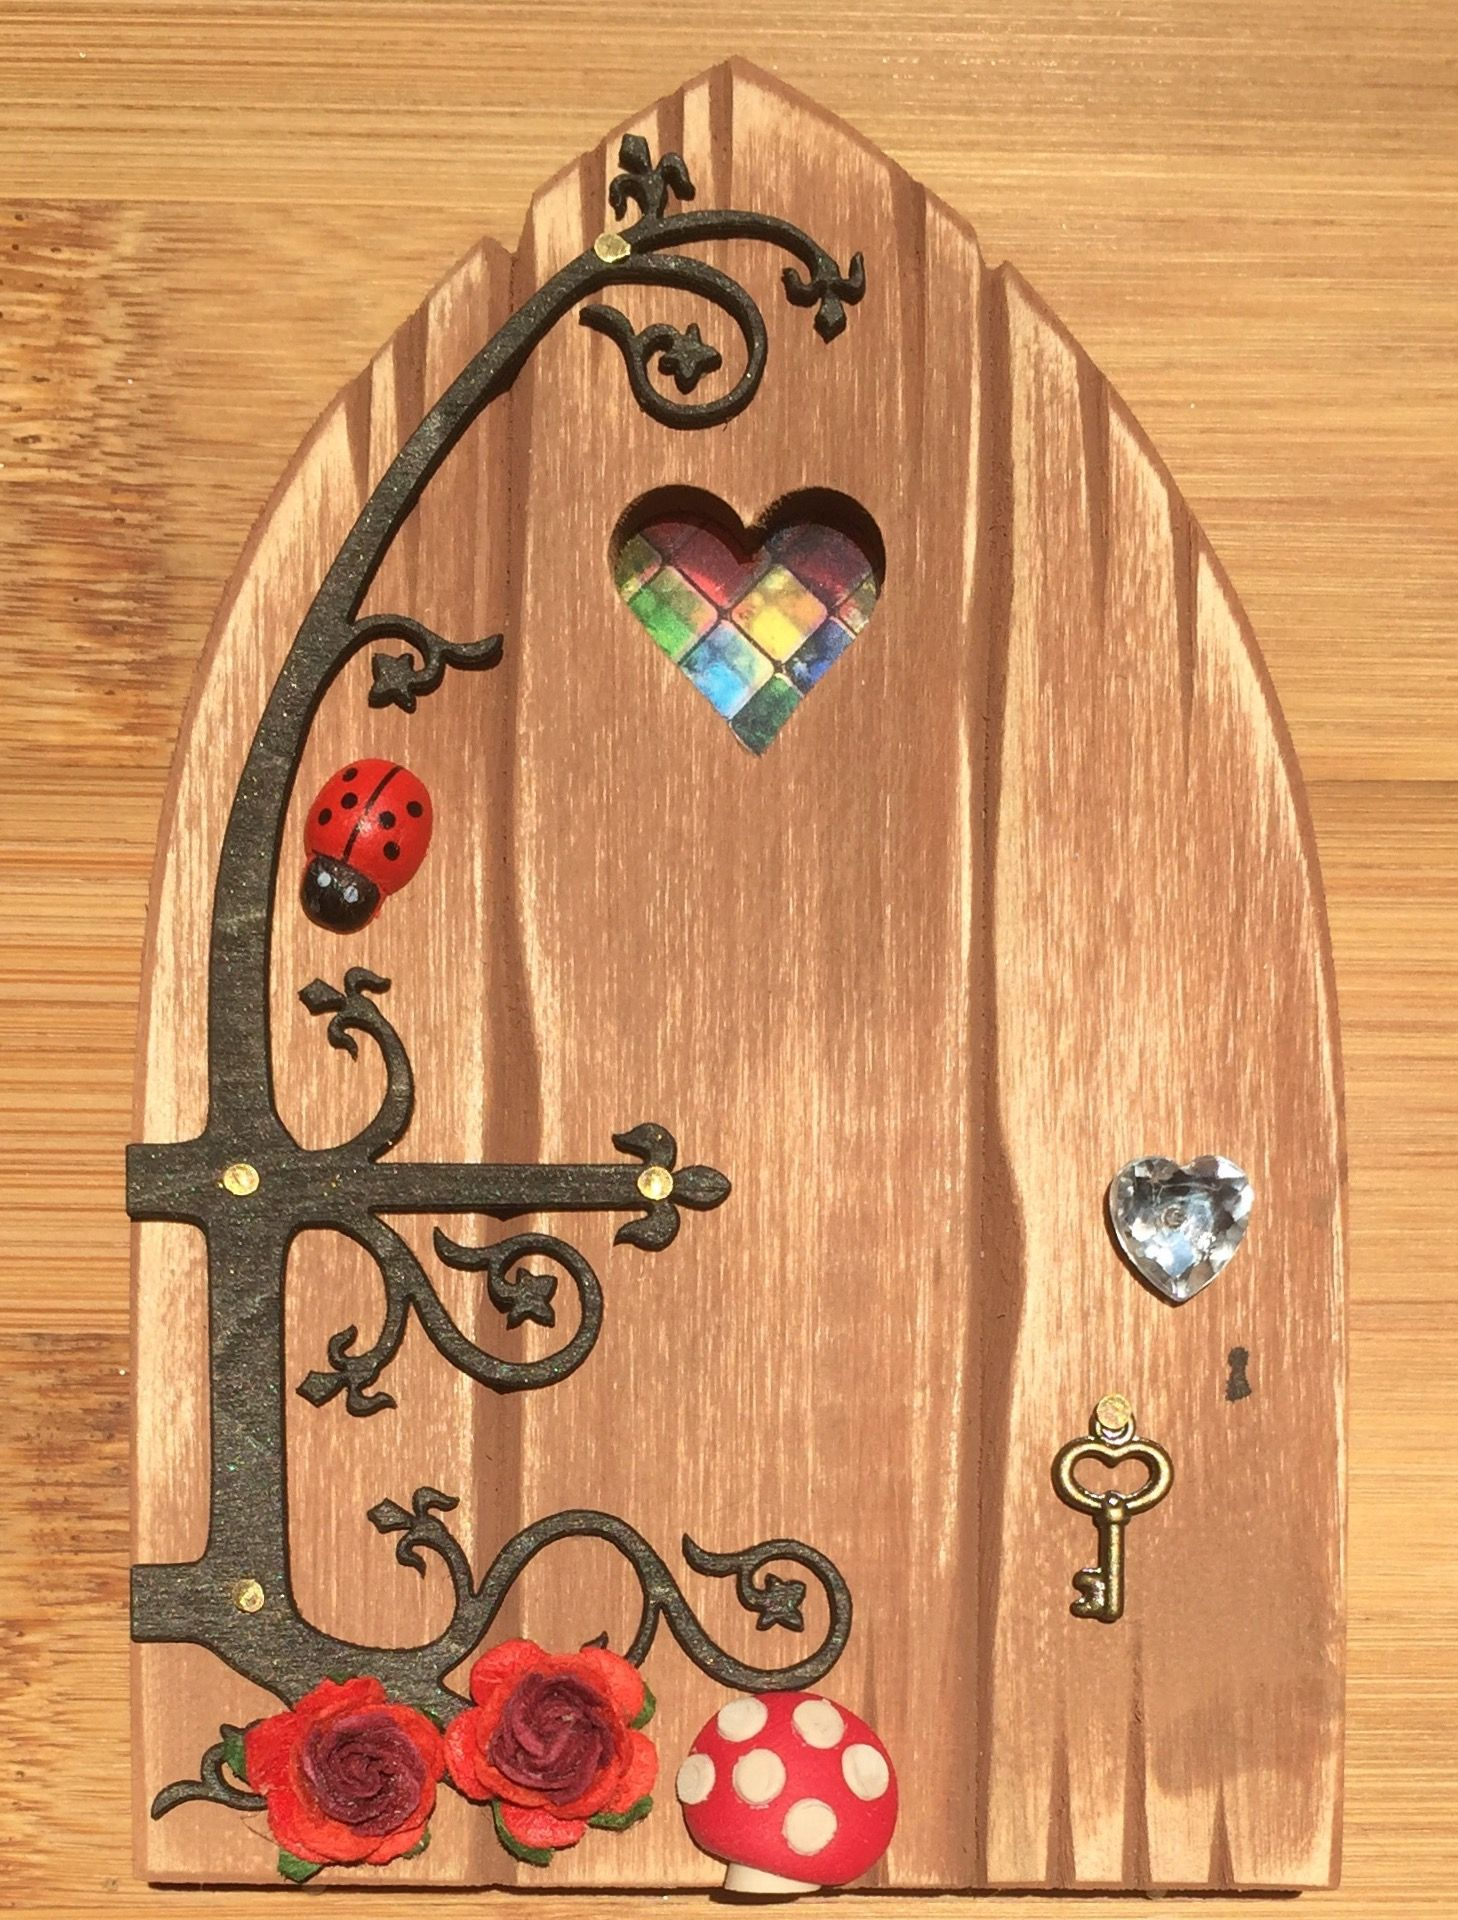 Oaktree Fairies - The Welsh Fairy Door Company. Oak Brown Fairy Door with new Fairytale hinge! .oaktreefairies.co.uk  sc 1 st  Pinterest & Oaktree Fairies - The Welsh Fairy Door Company. Oak Brown Fairy Door ...